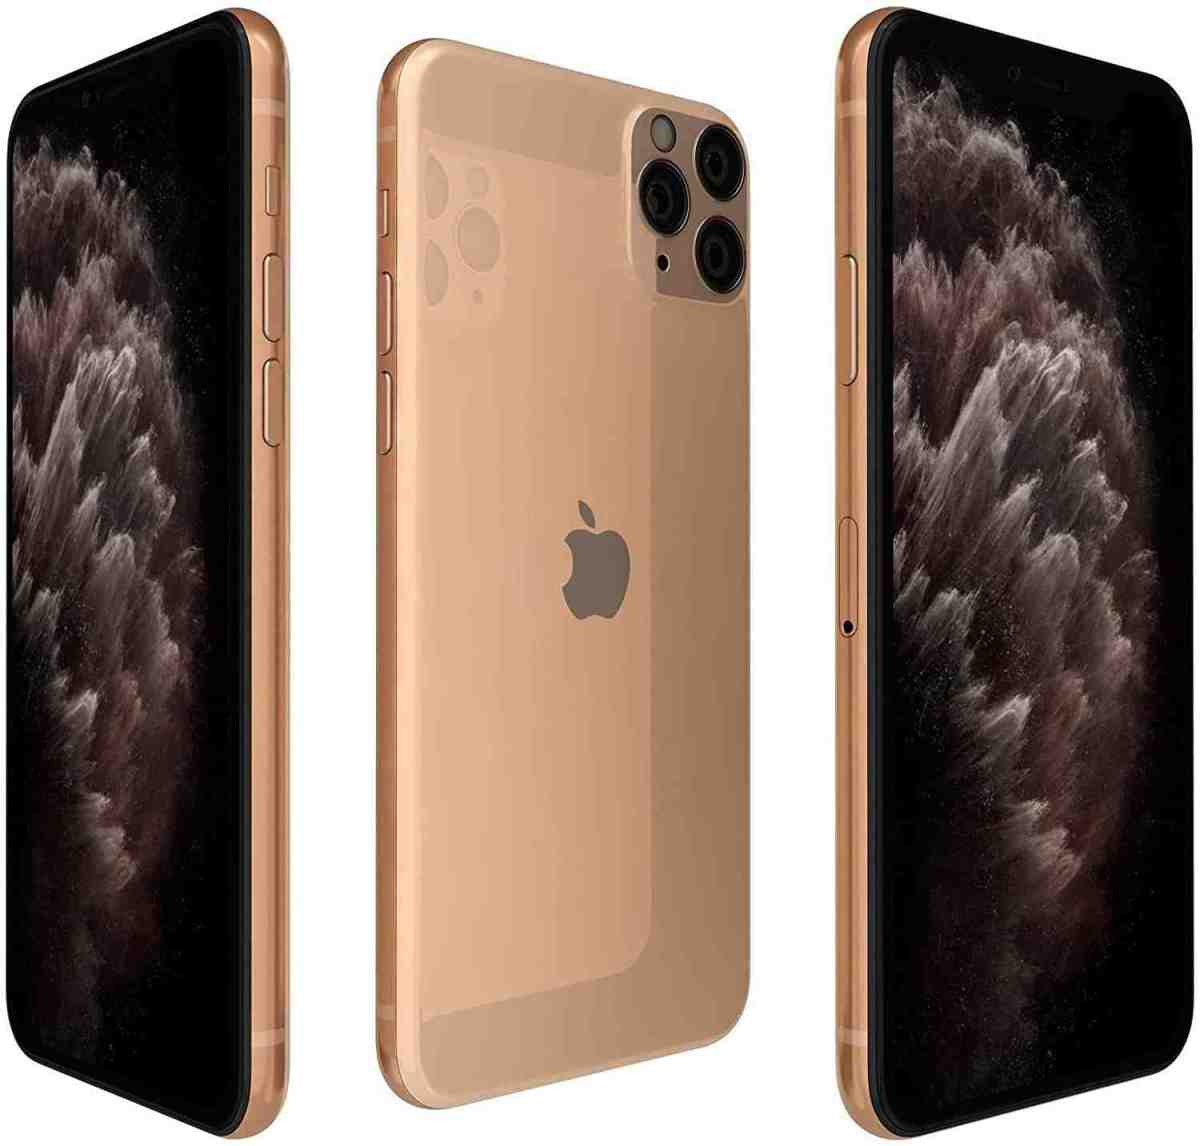 Can I get a free iPhone 11 Pro Max?